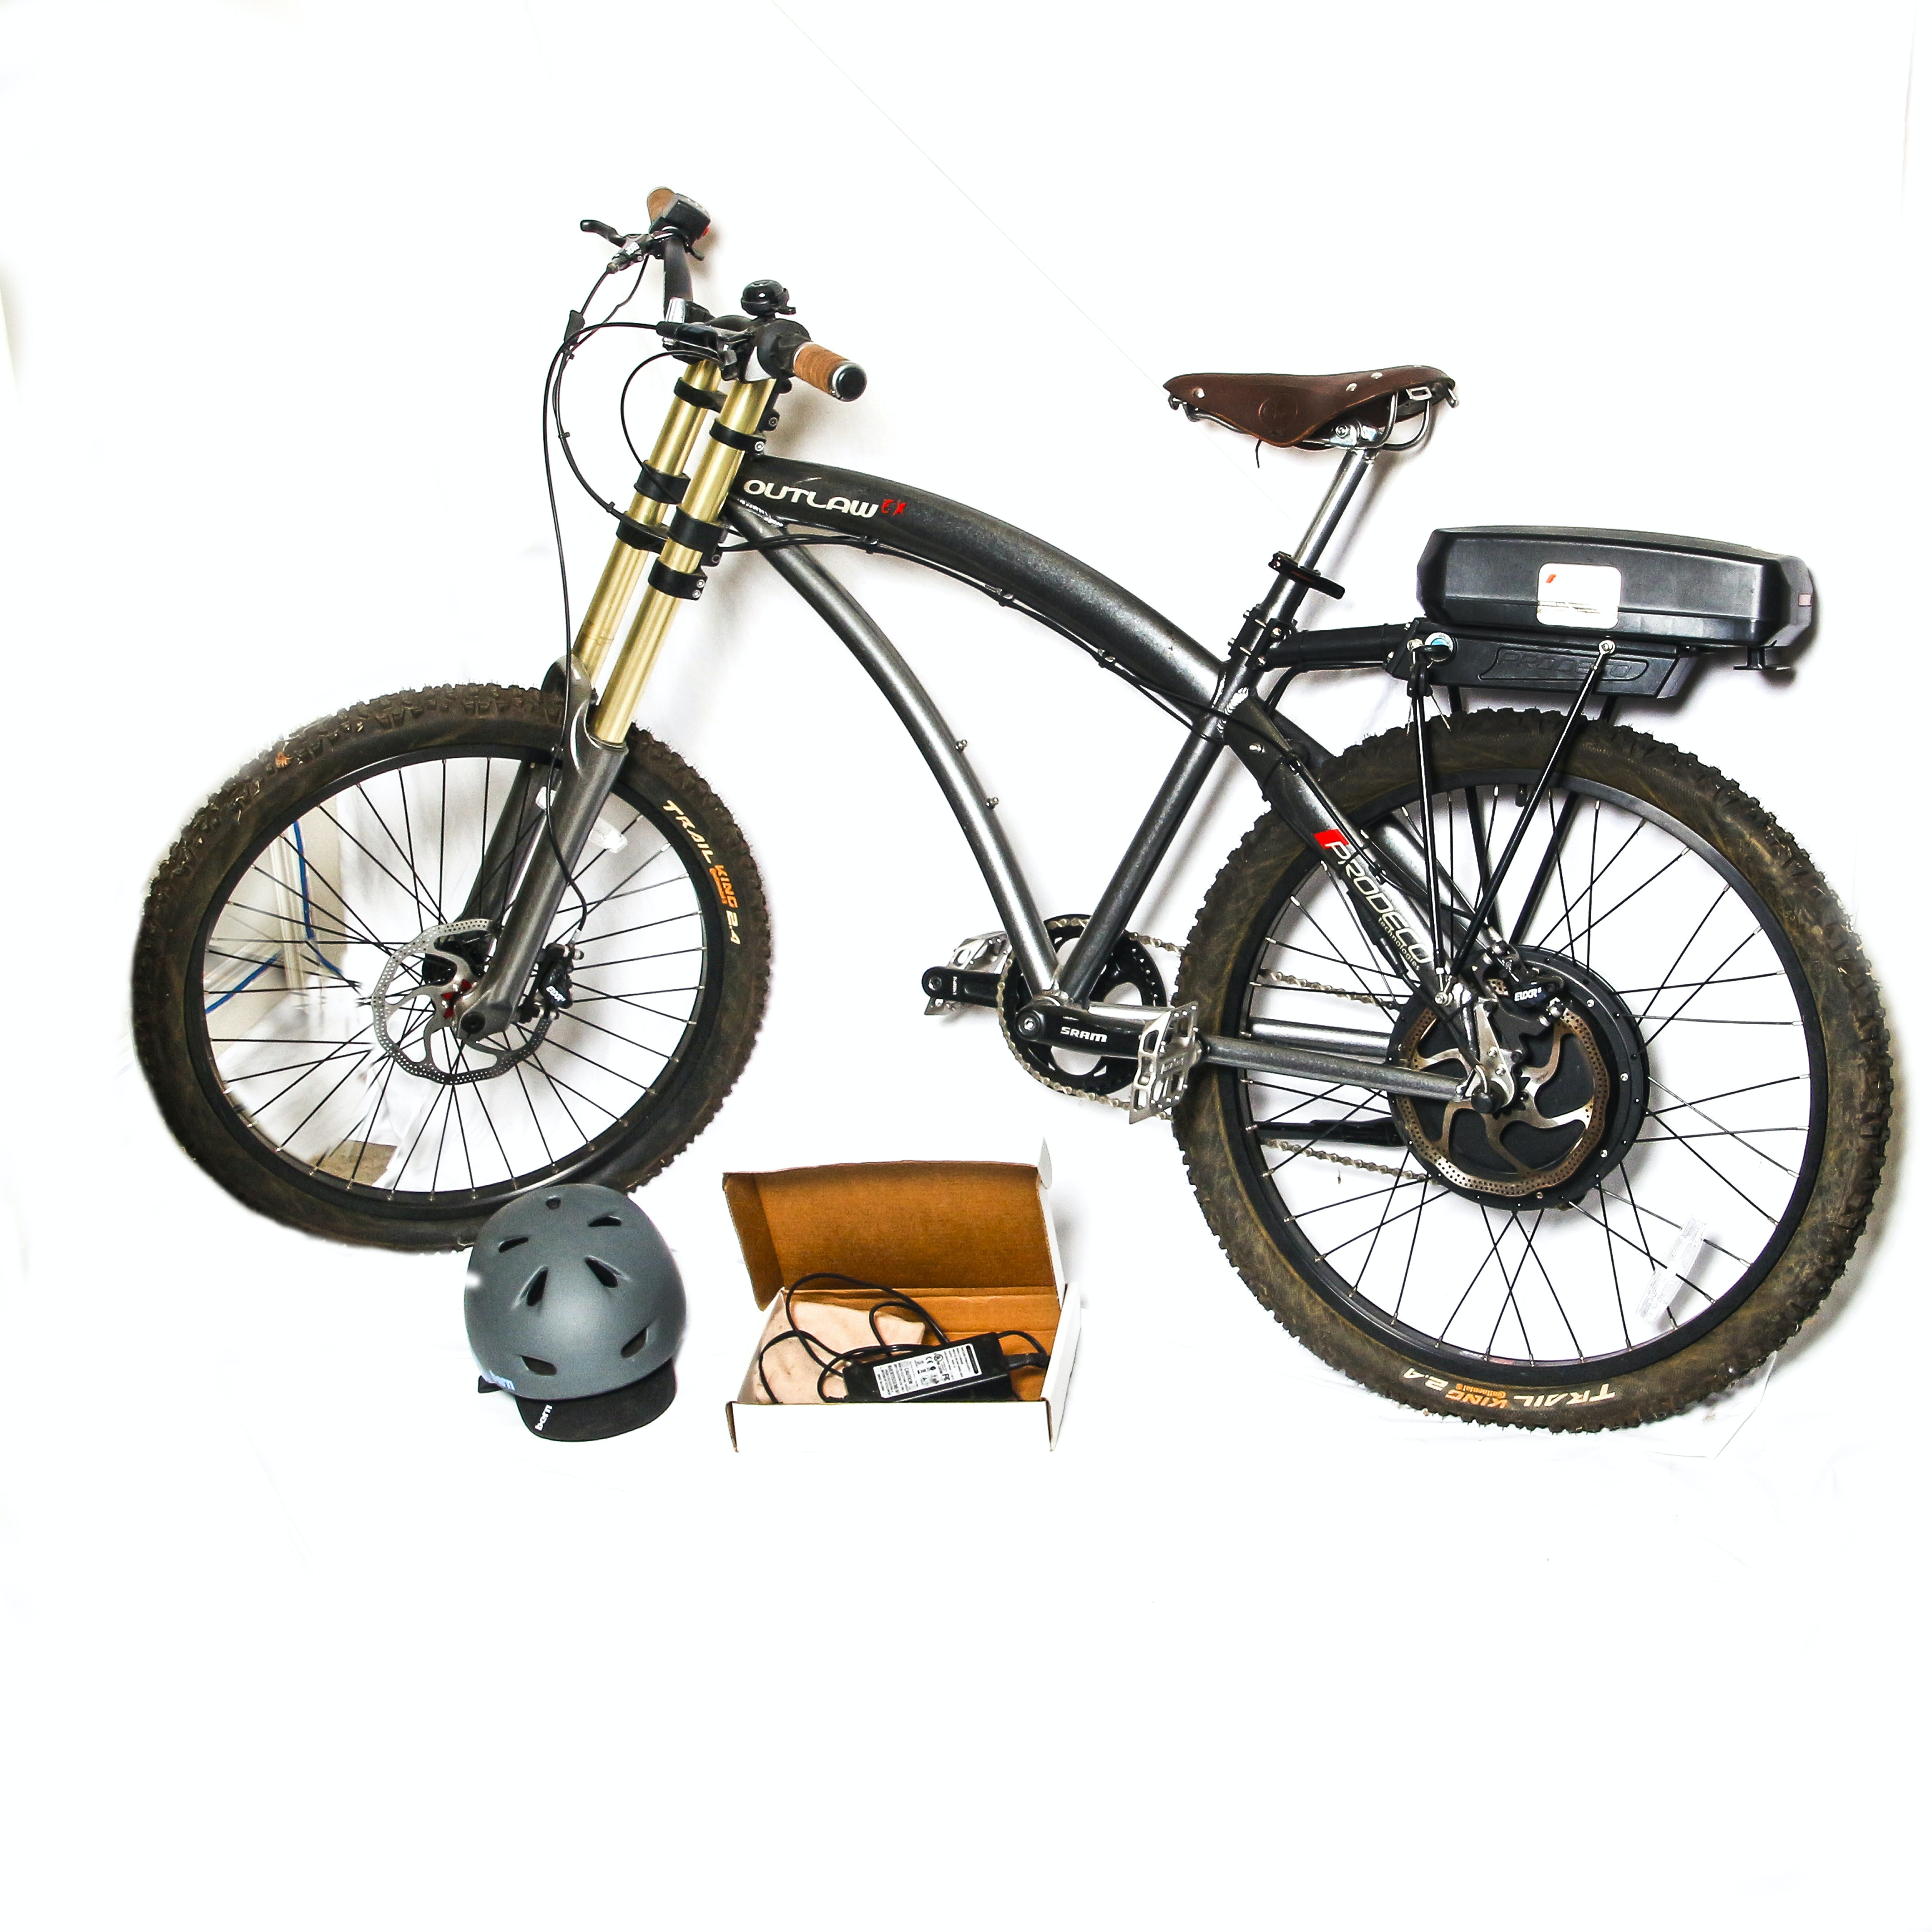 ProdecoTech Outlaw EX 36V Electric Bicycle with Bern Helmet